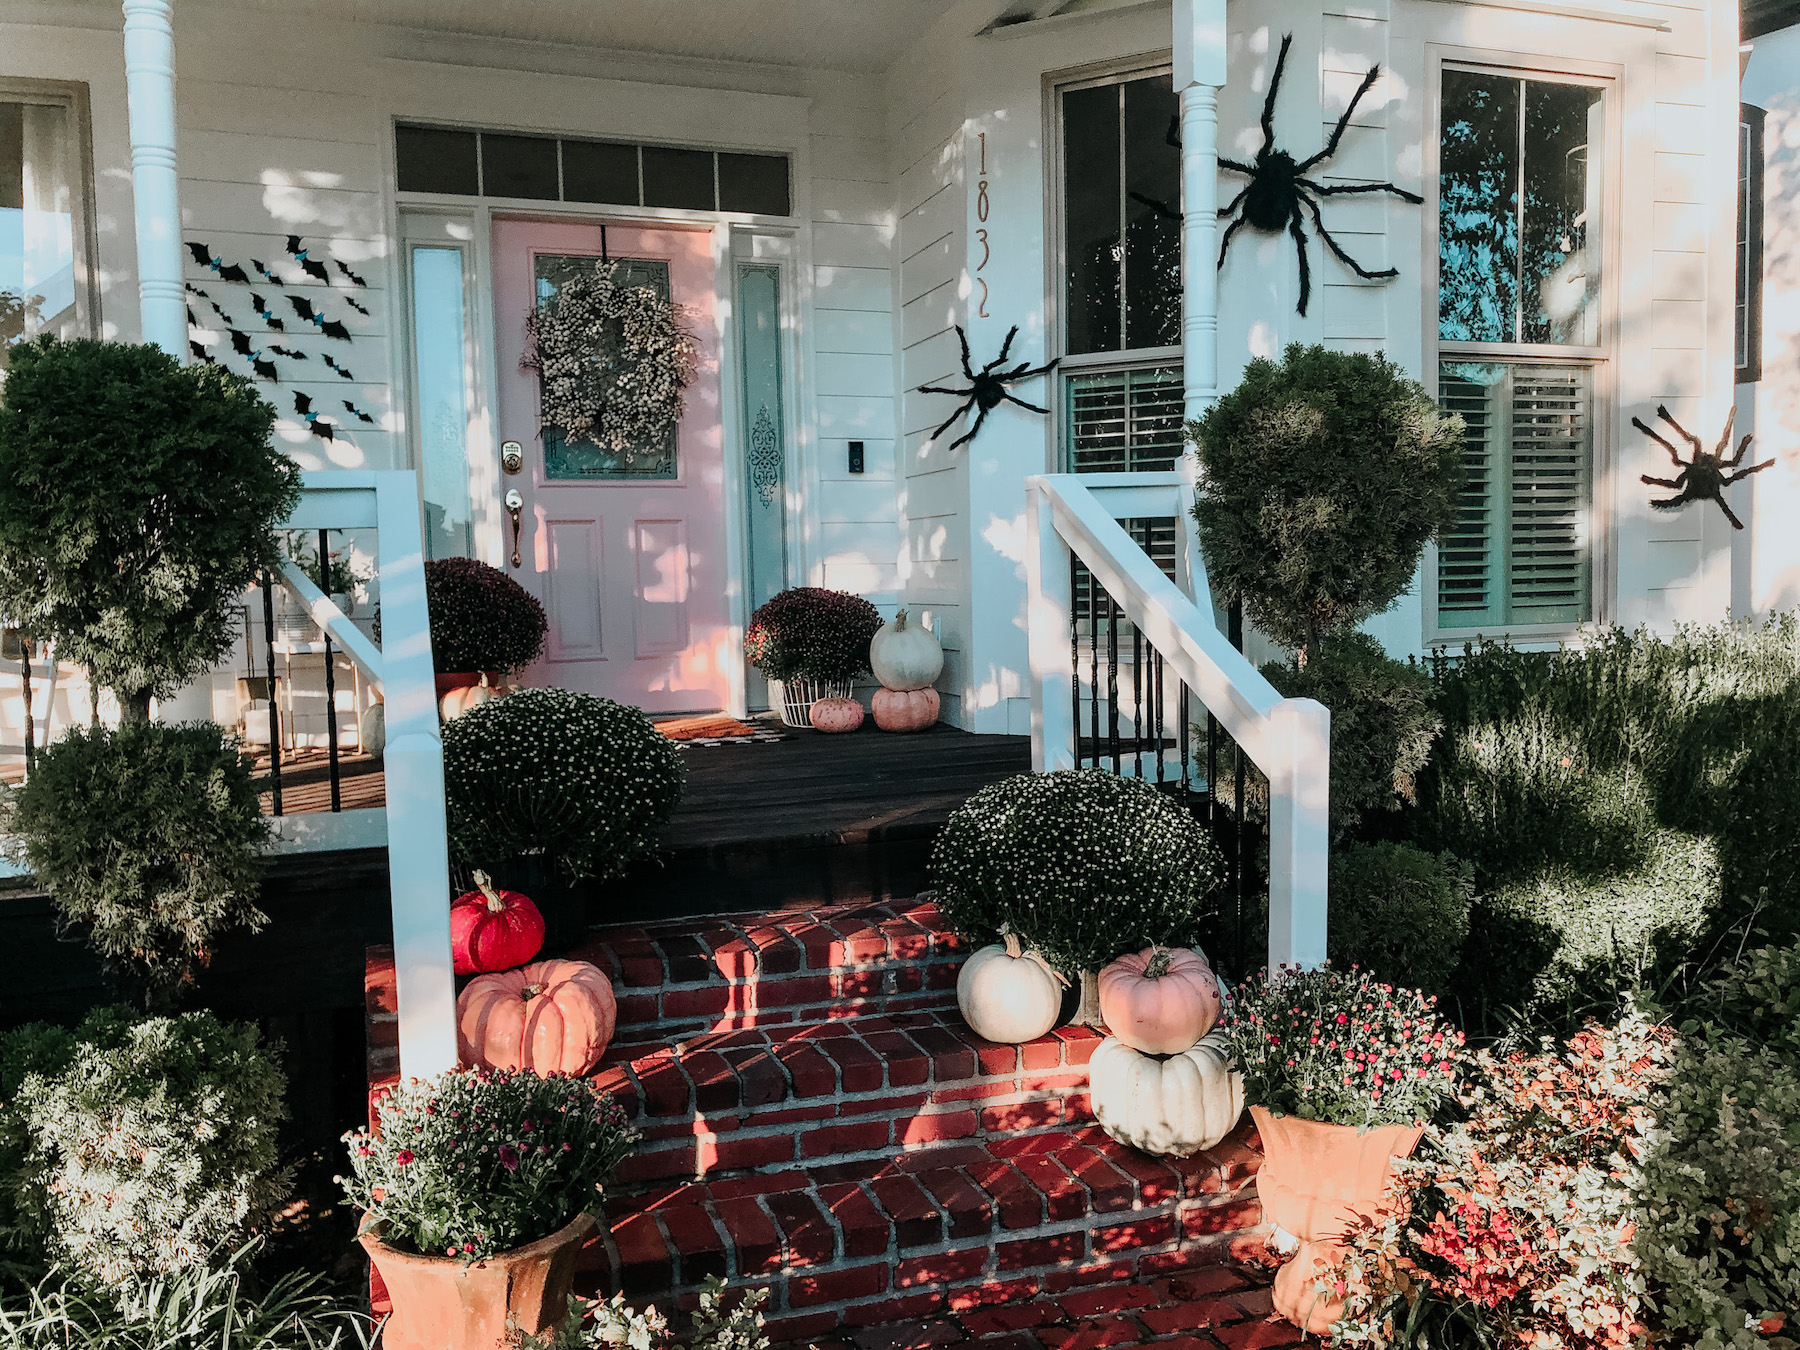 Spooky Halloween Exterior with Huge Spiders, Bats, and Mums